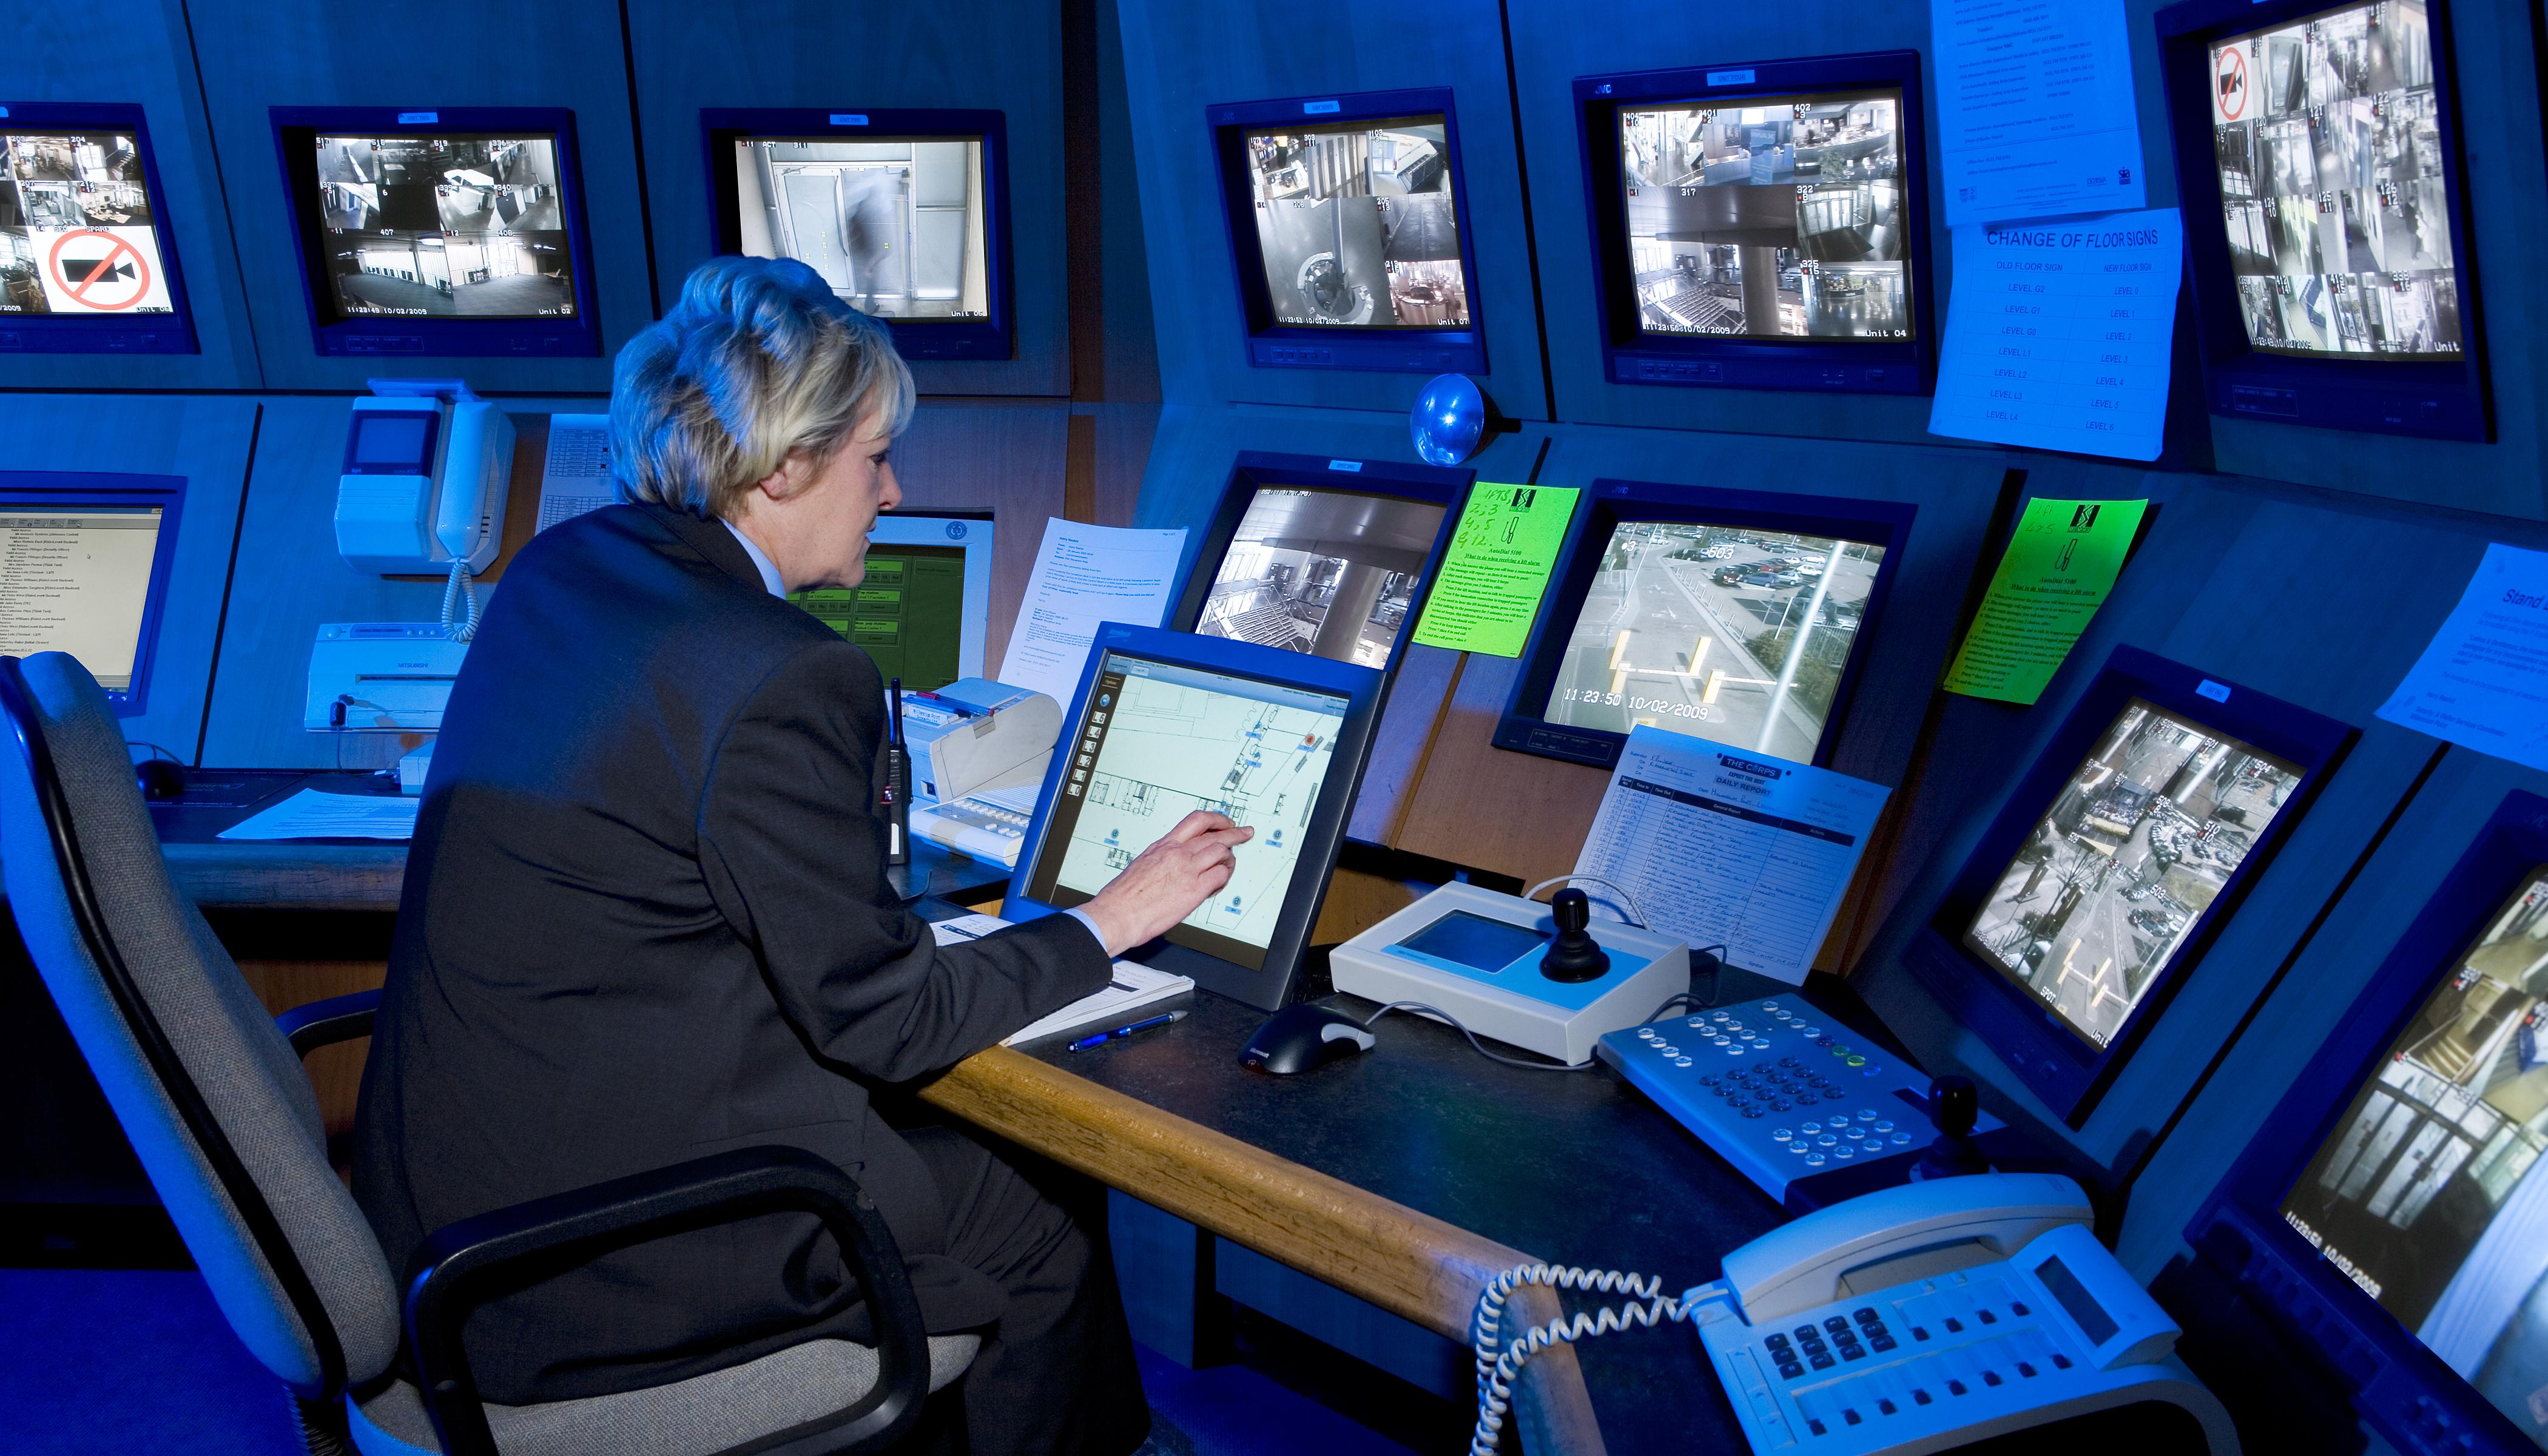 The Bsia Is Calling For Increased Engagement In Cctv Standards Development